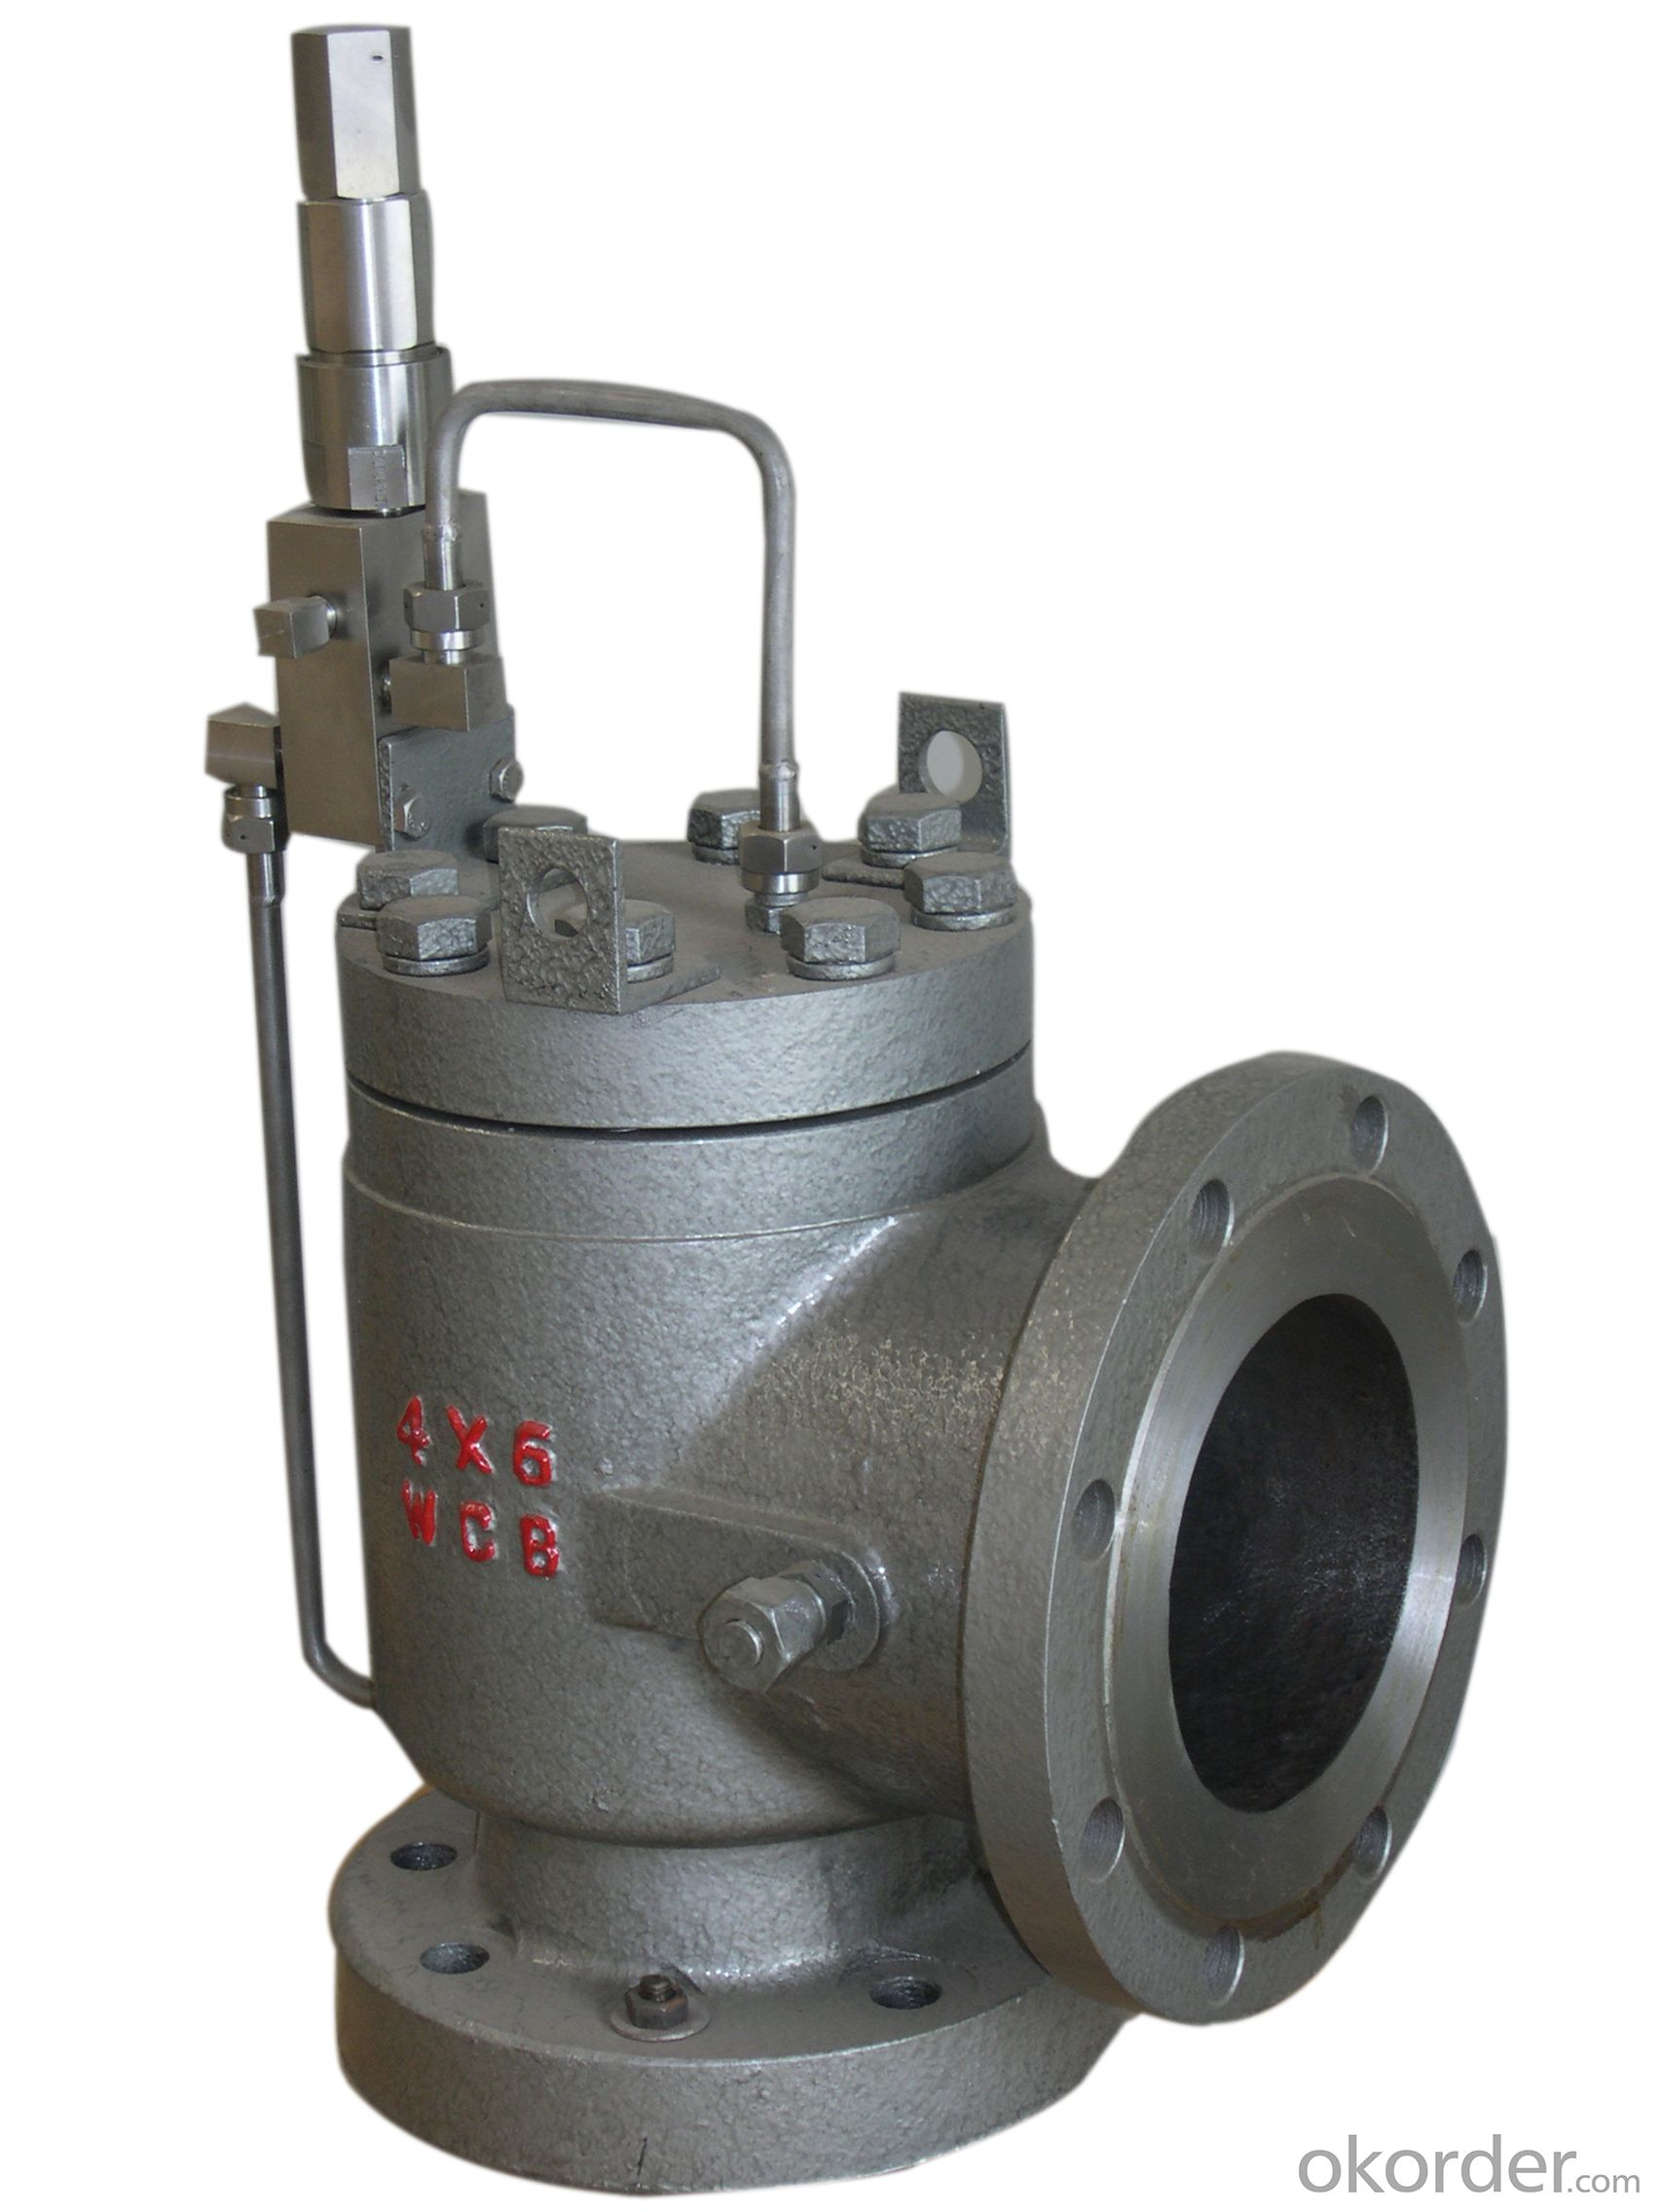 High Performance API Pilot Operated Pressure Relief Valve